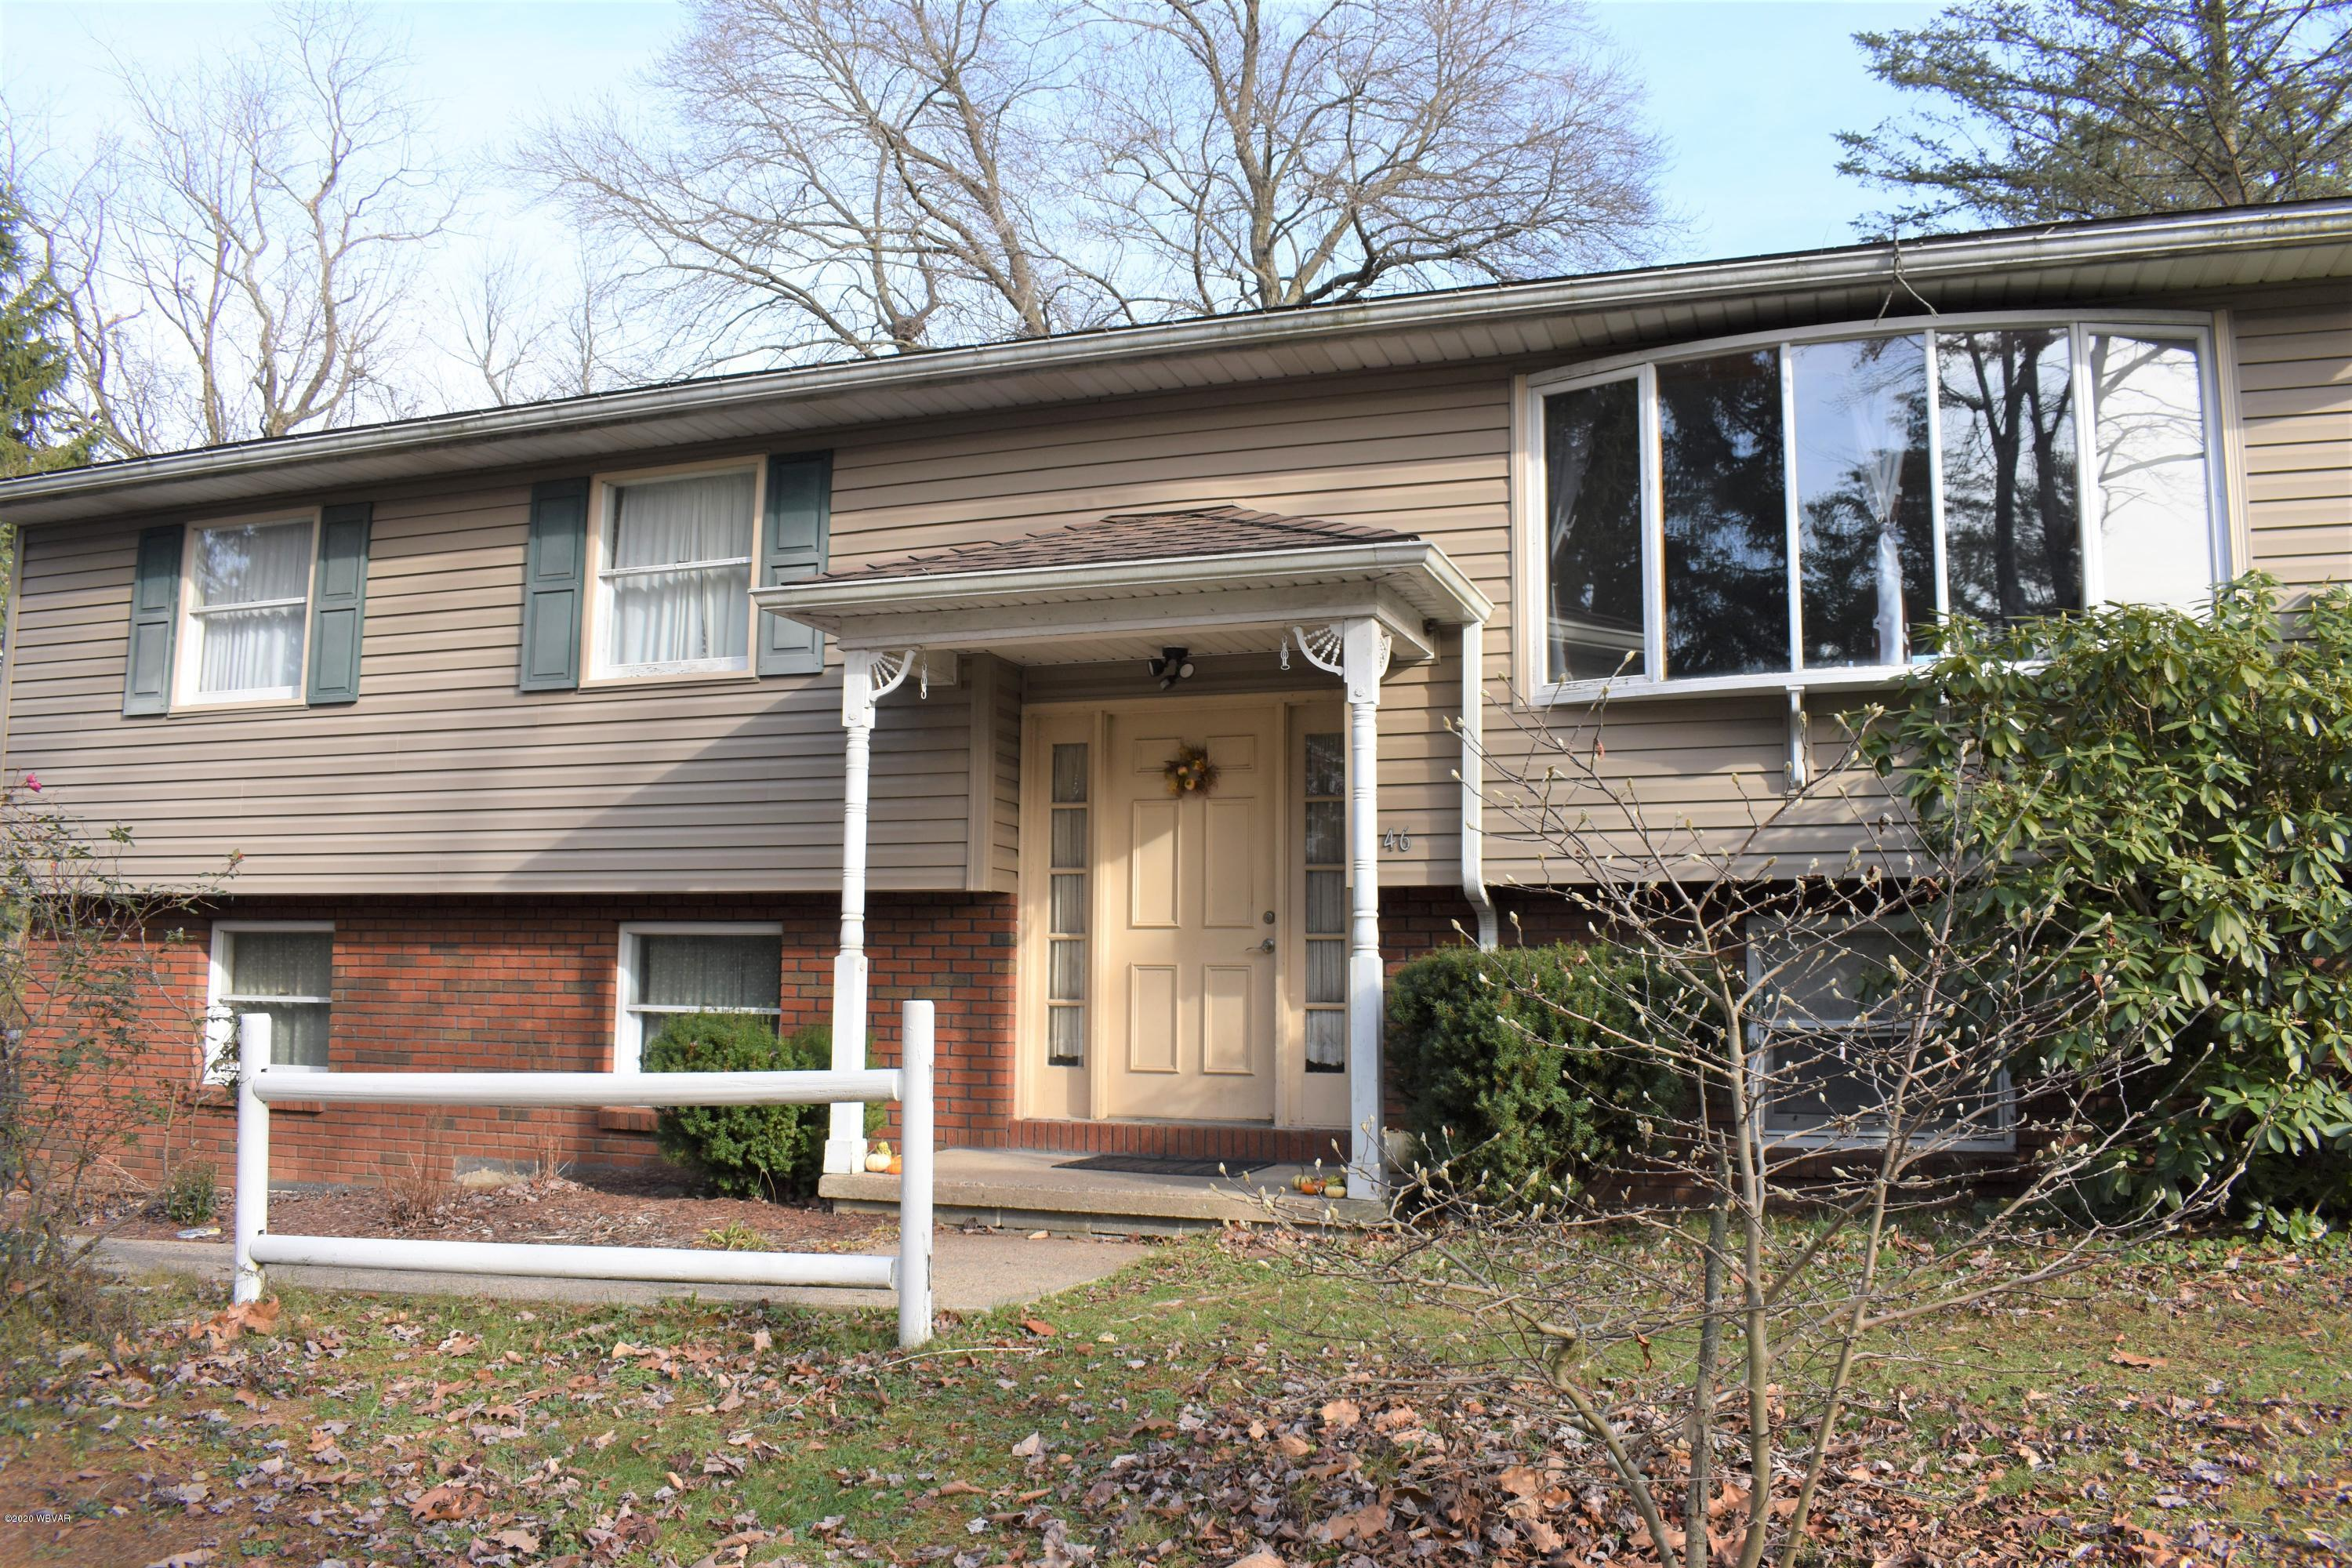 46 WOODLAND DRIVE, Lock Haven, PA 17745, 4 Bedrooms Bedrooms, ,2 BathroomsBathrooms,Residential,For sale,WOODLAND,WB-91549